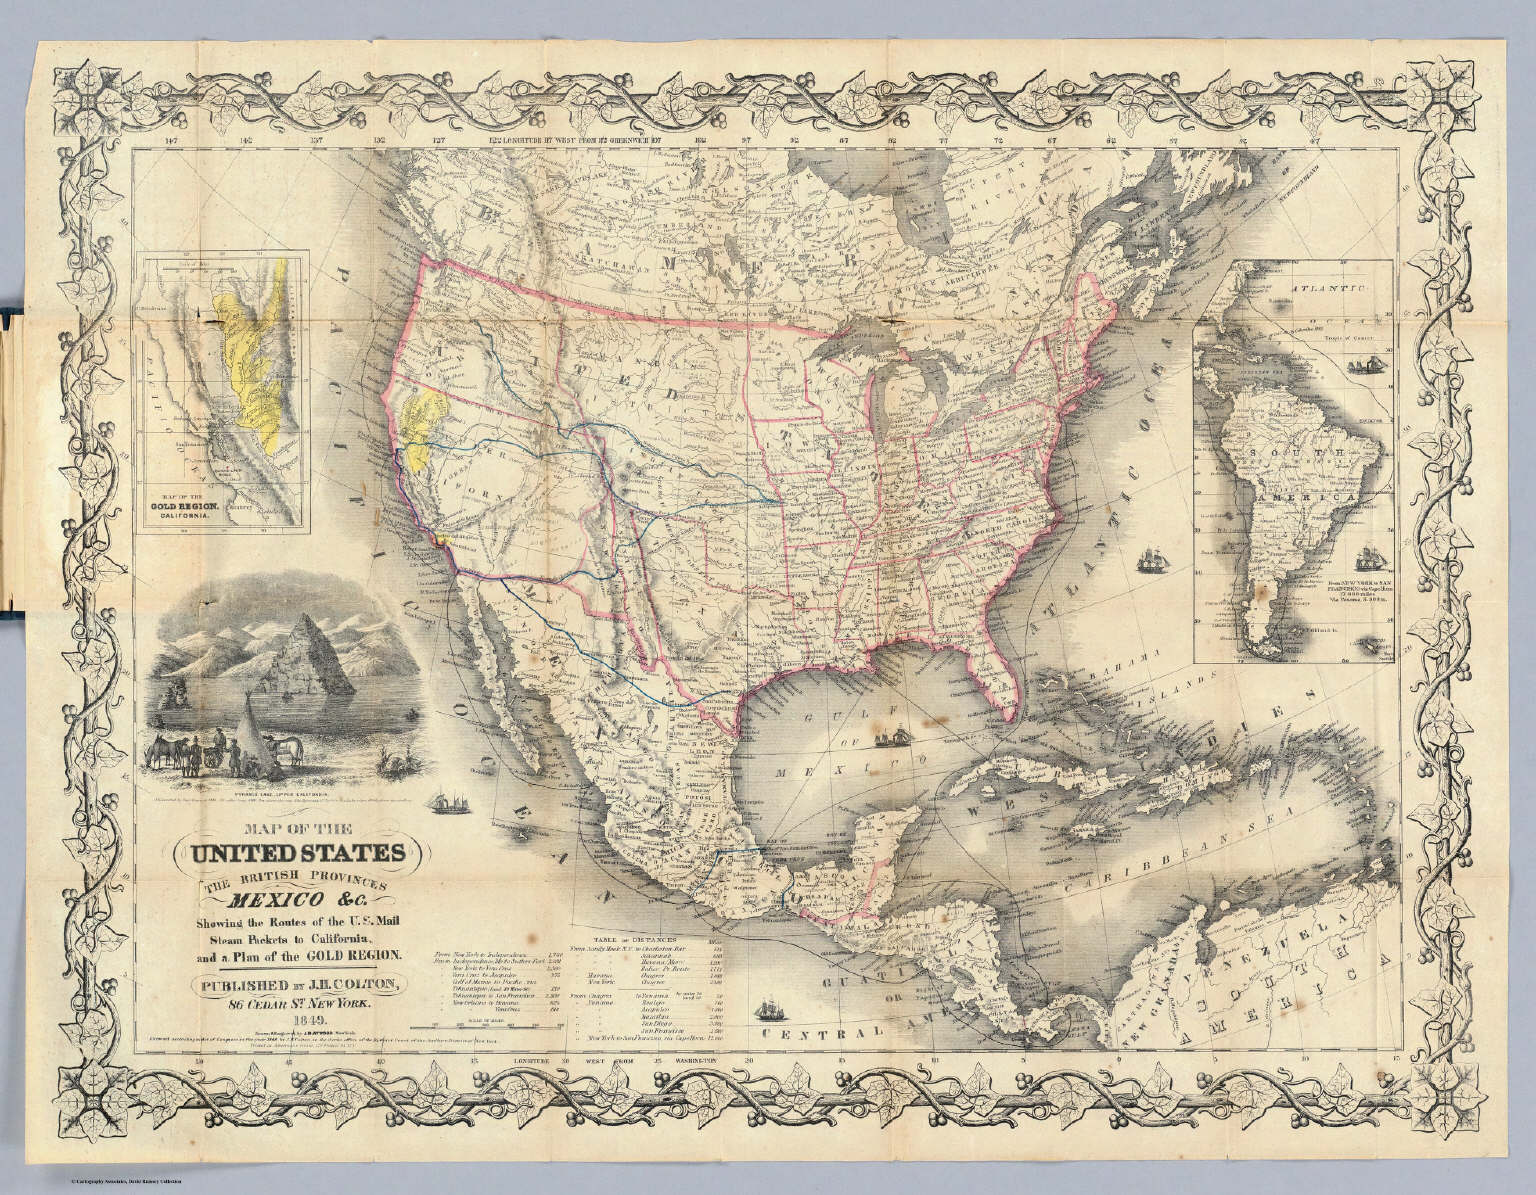 Map Of The United States The British Provinces Mexico c David